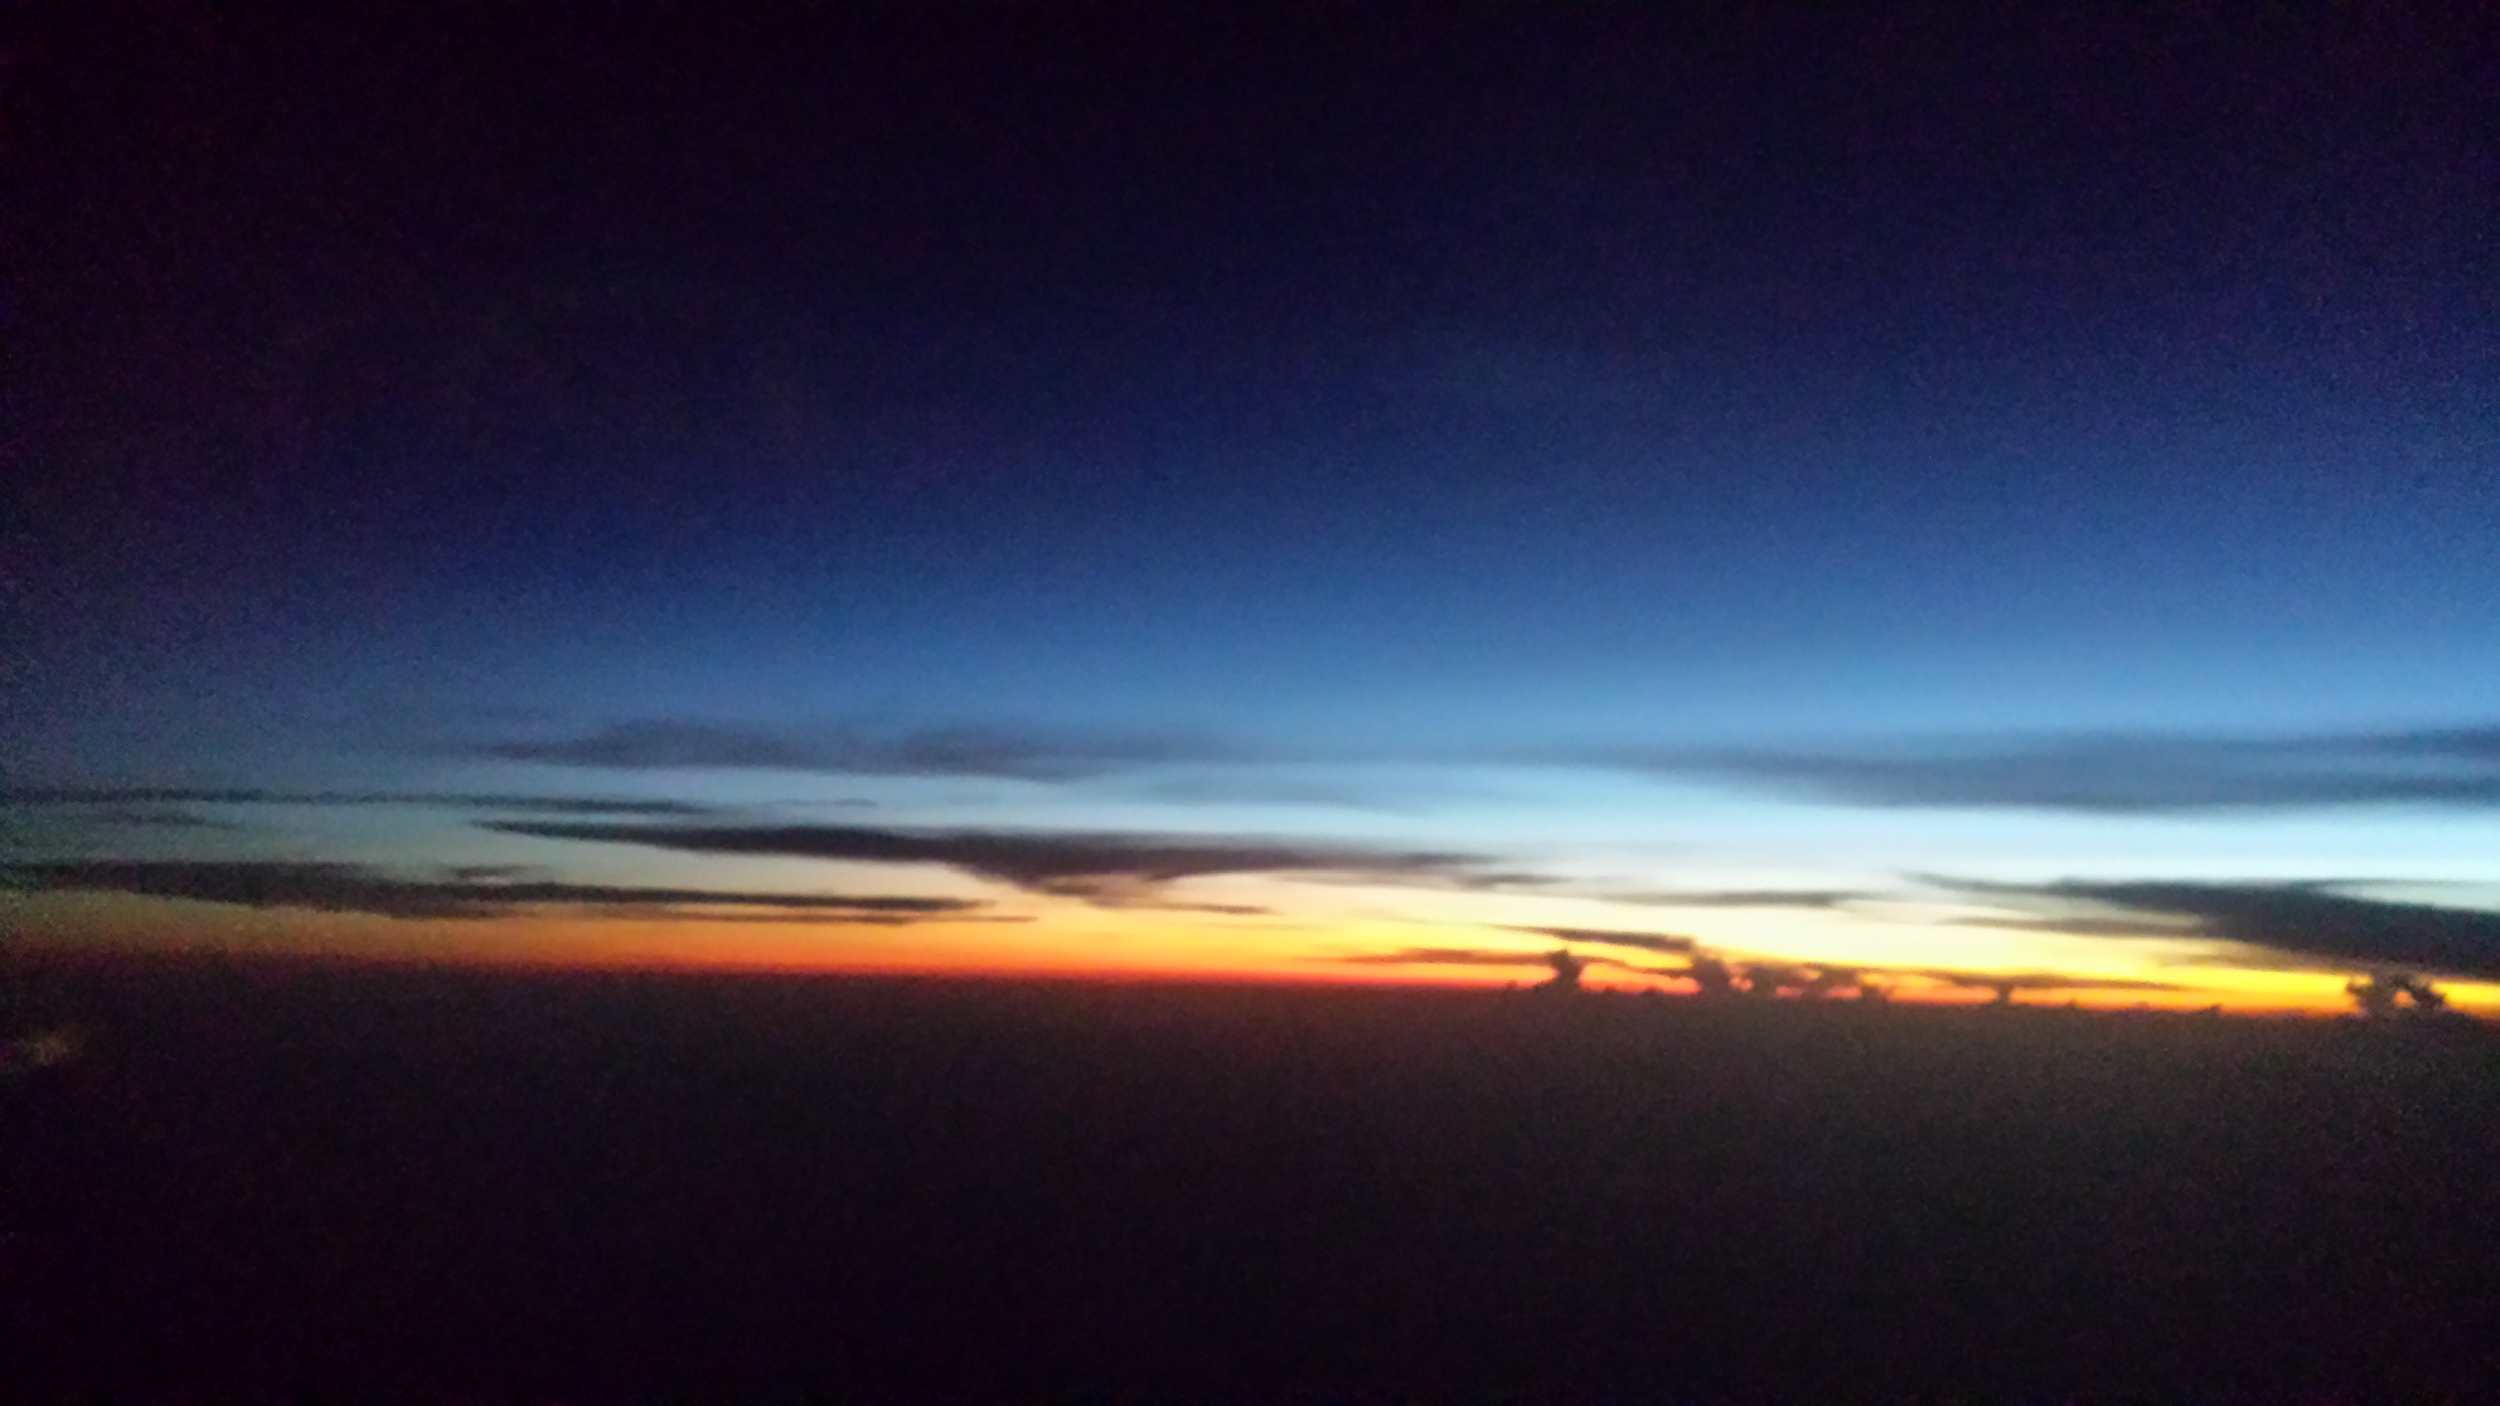 Sunset viewing through an airplane window...en route to Nicaragua.